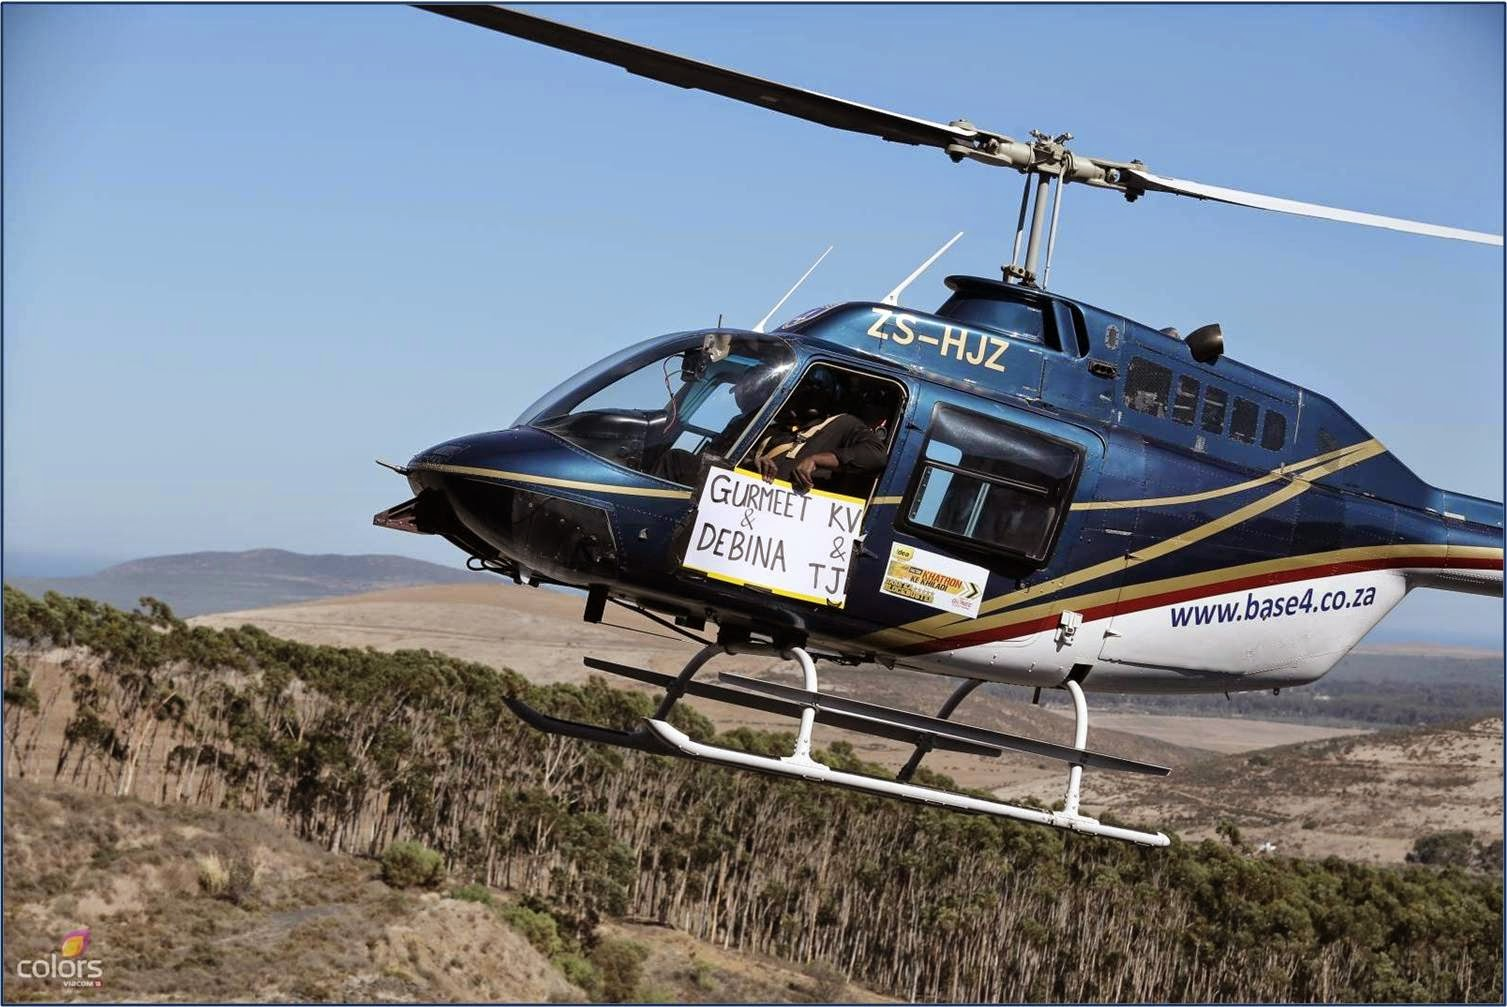 Chopper Express of Khatron Ke Khiladi with names of contestants